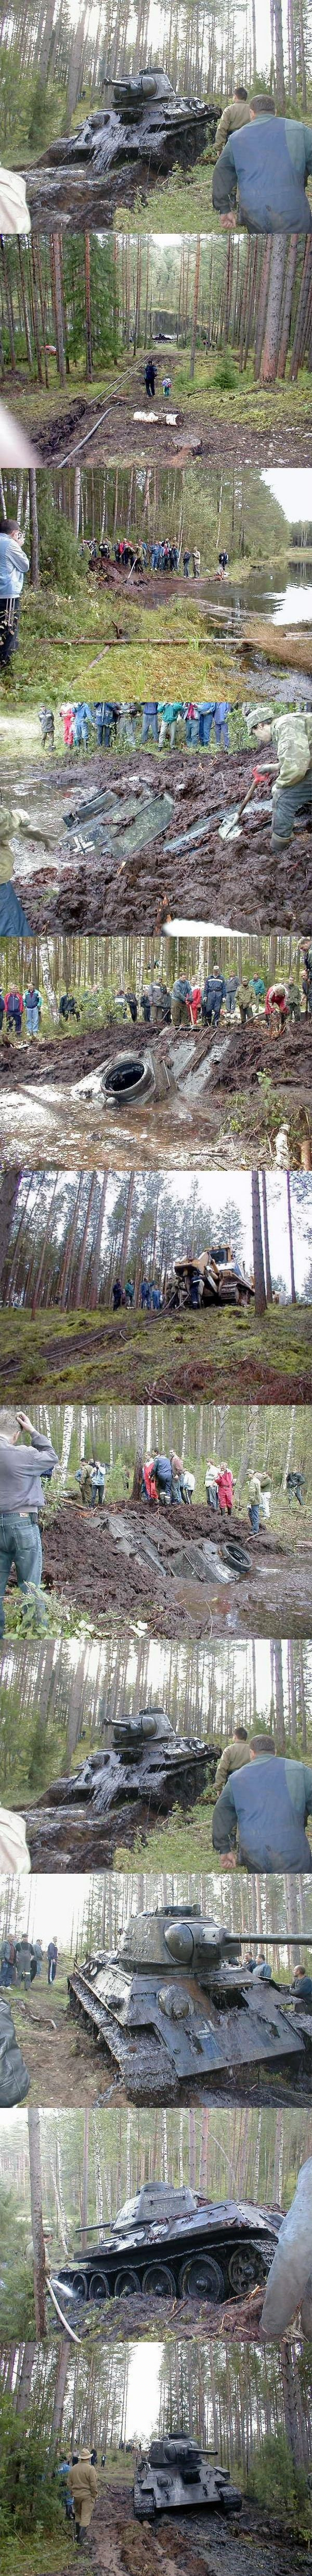 Soviet WW2 Tank With German Markings Pulled From A Lake in Estonia.